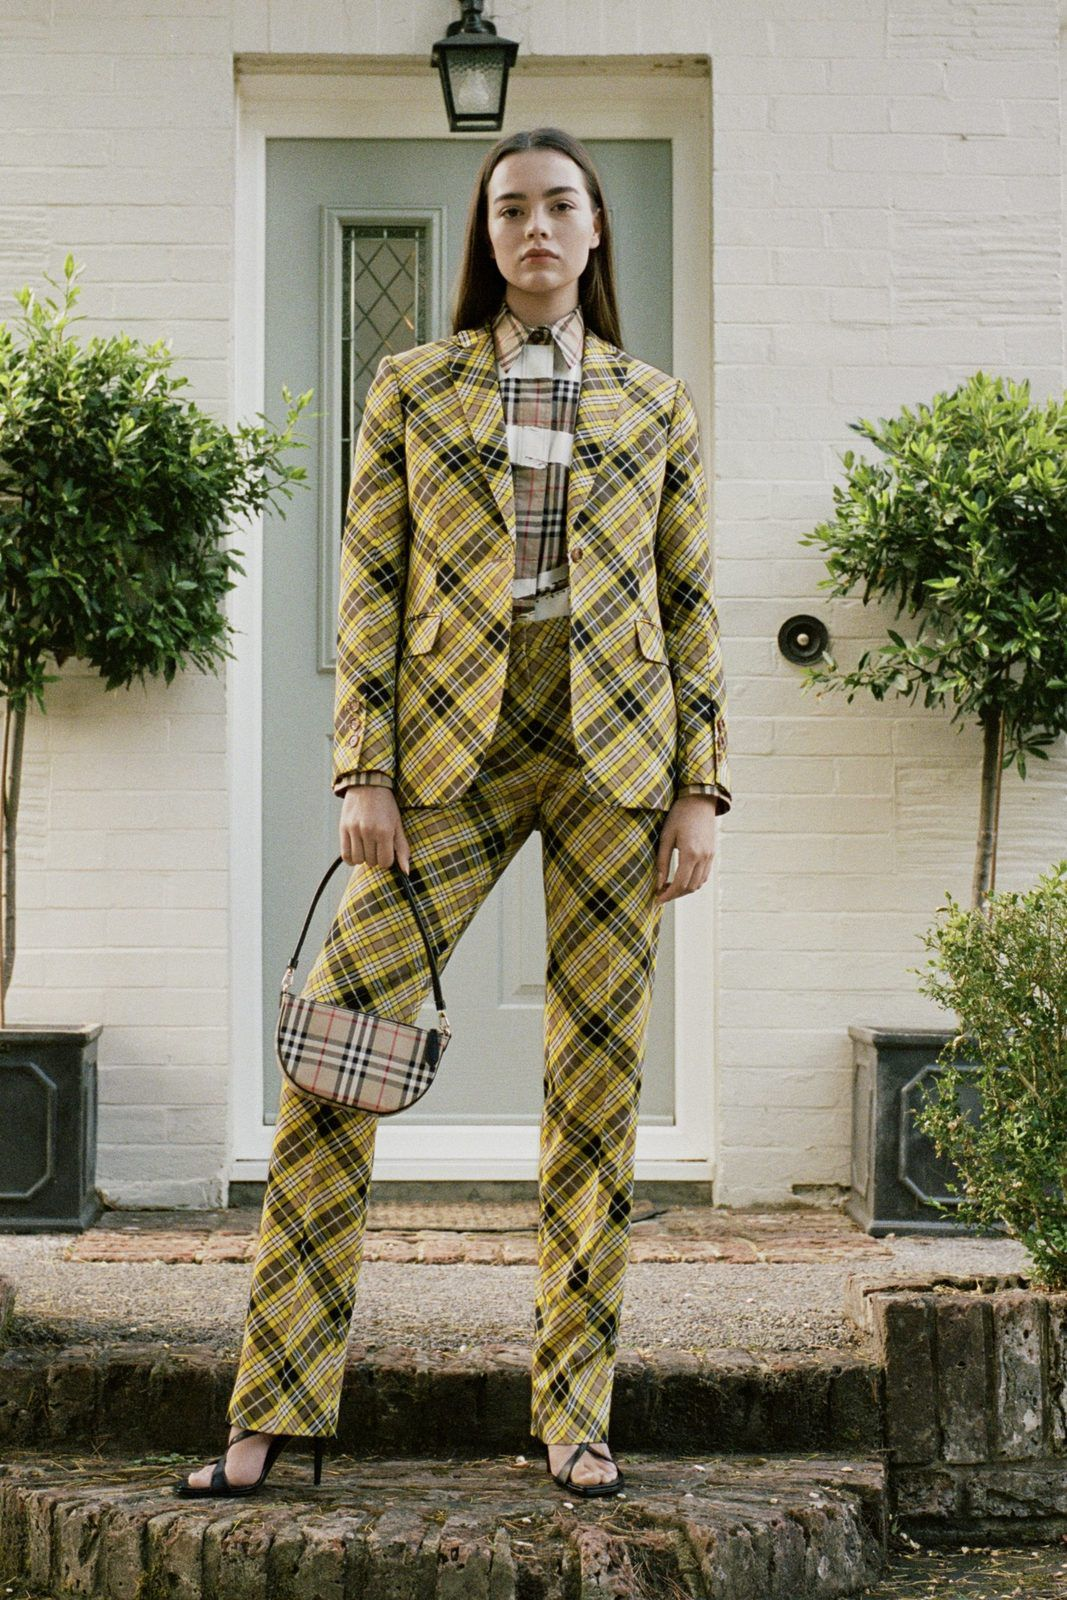 BURBERRY RESORT 2021 COLLECTION